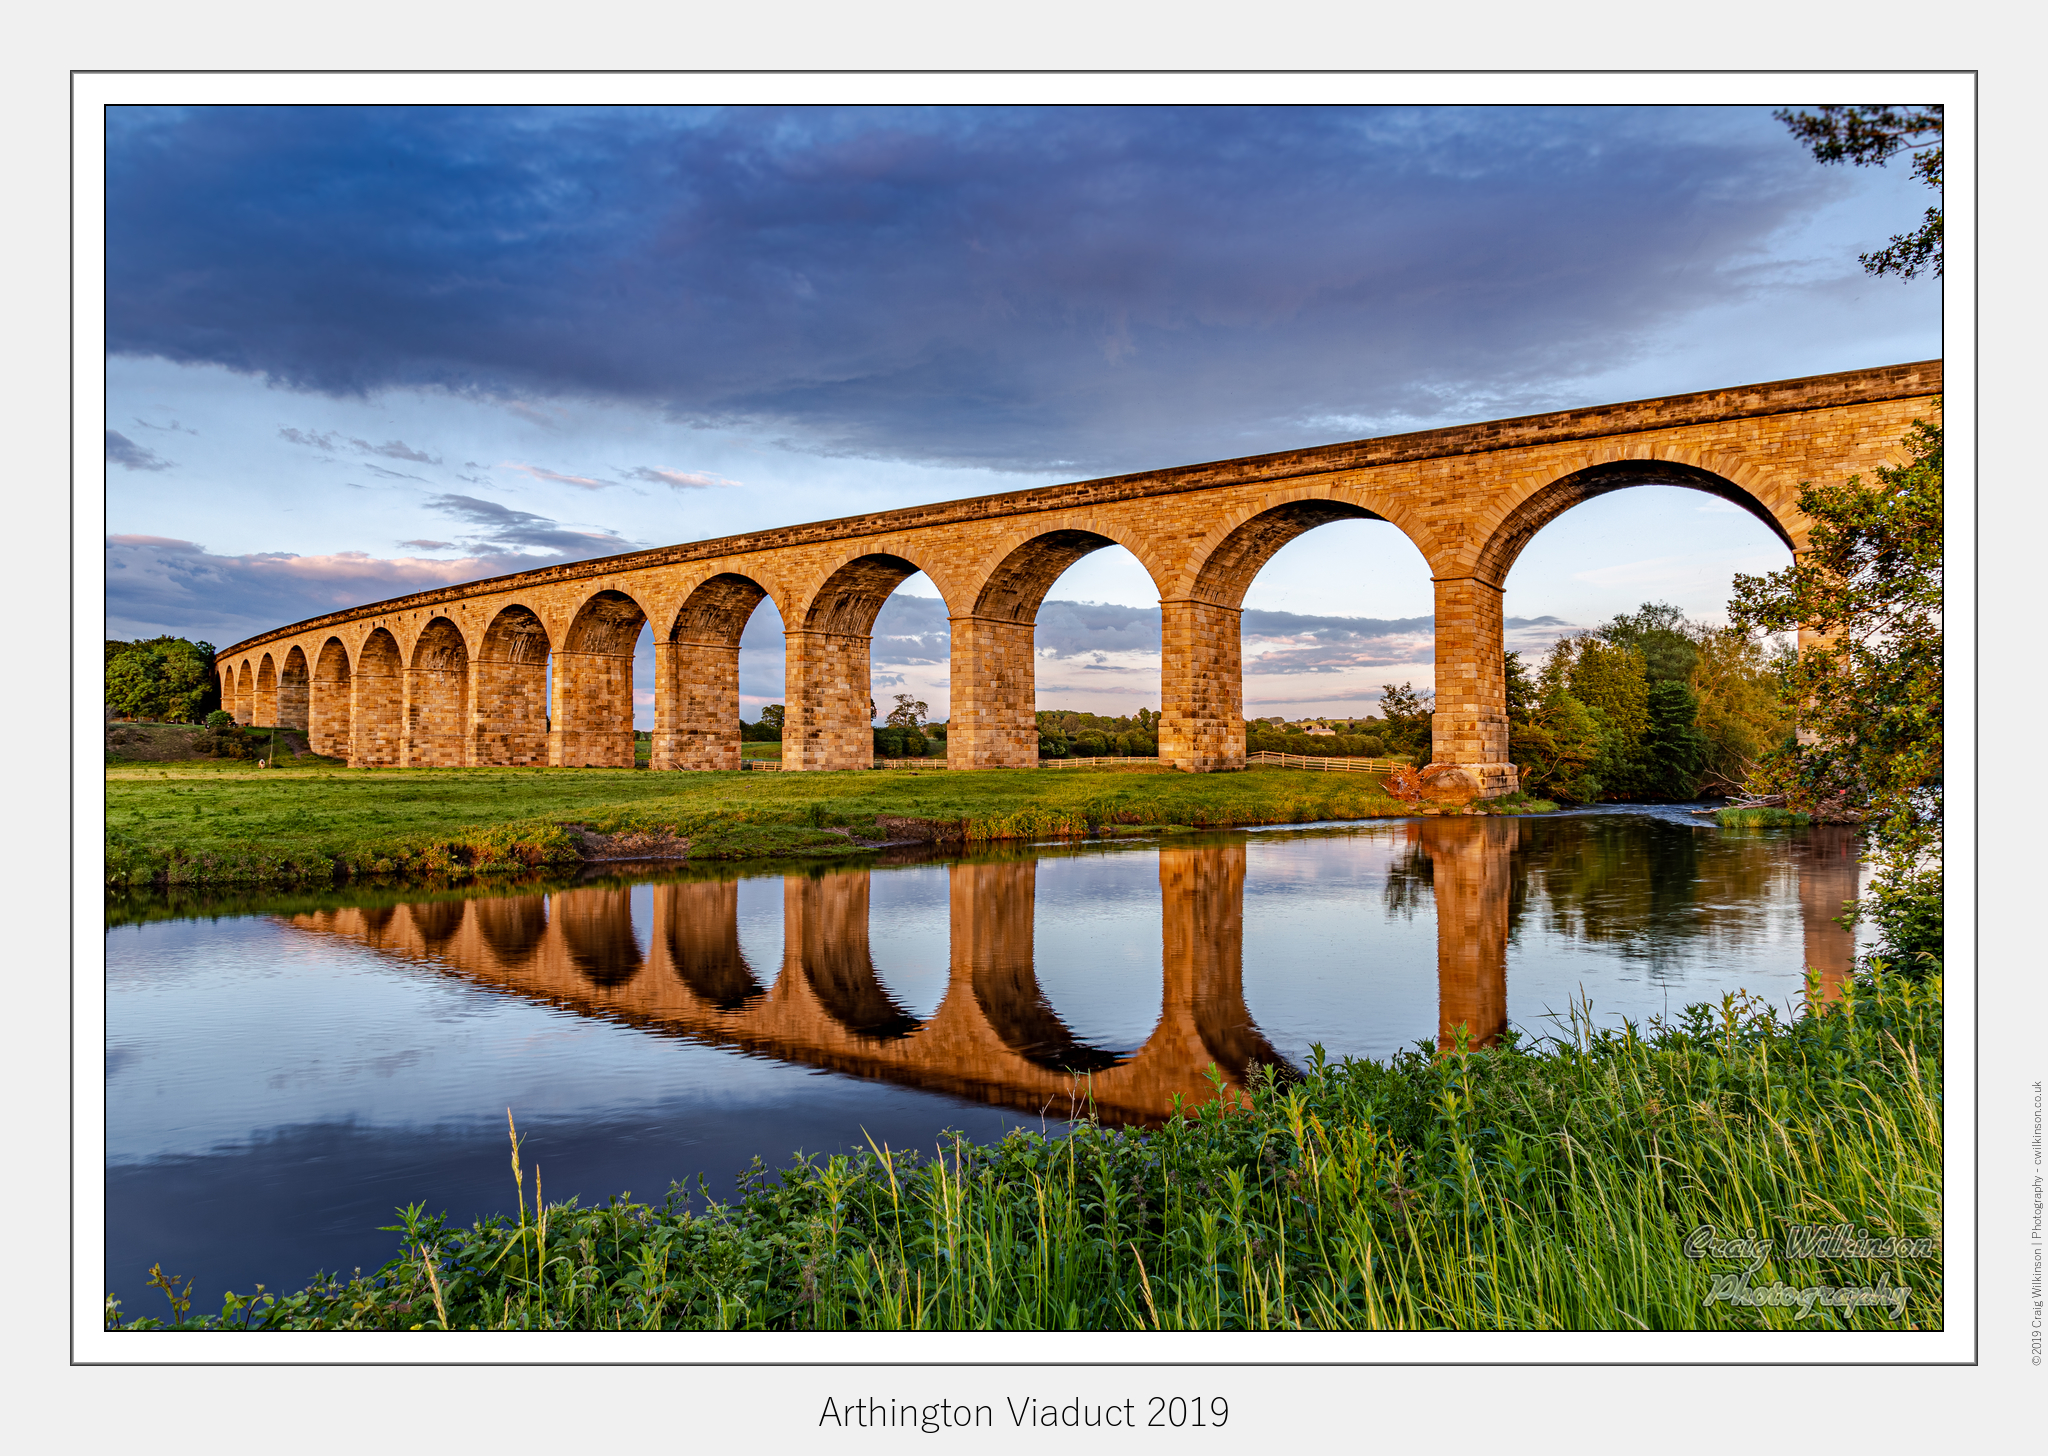 01-Arthington Viaduct 2019 - (5760 x 3840).jpg